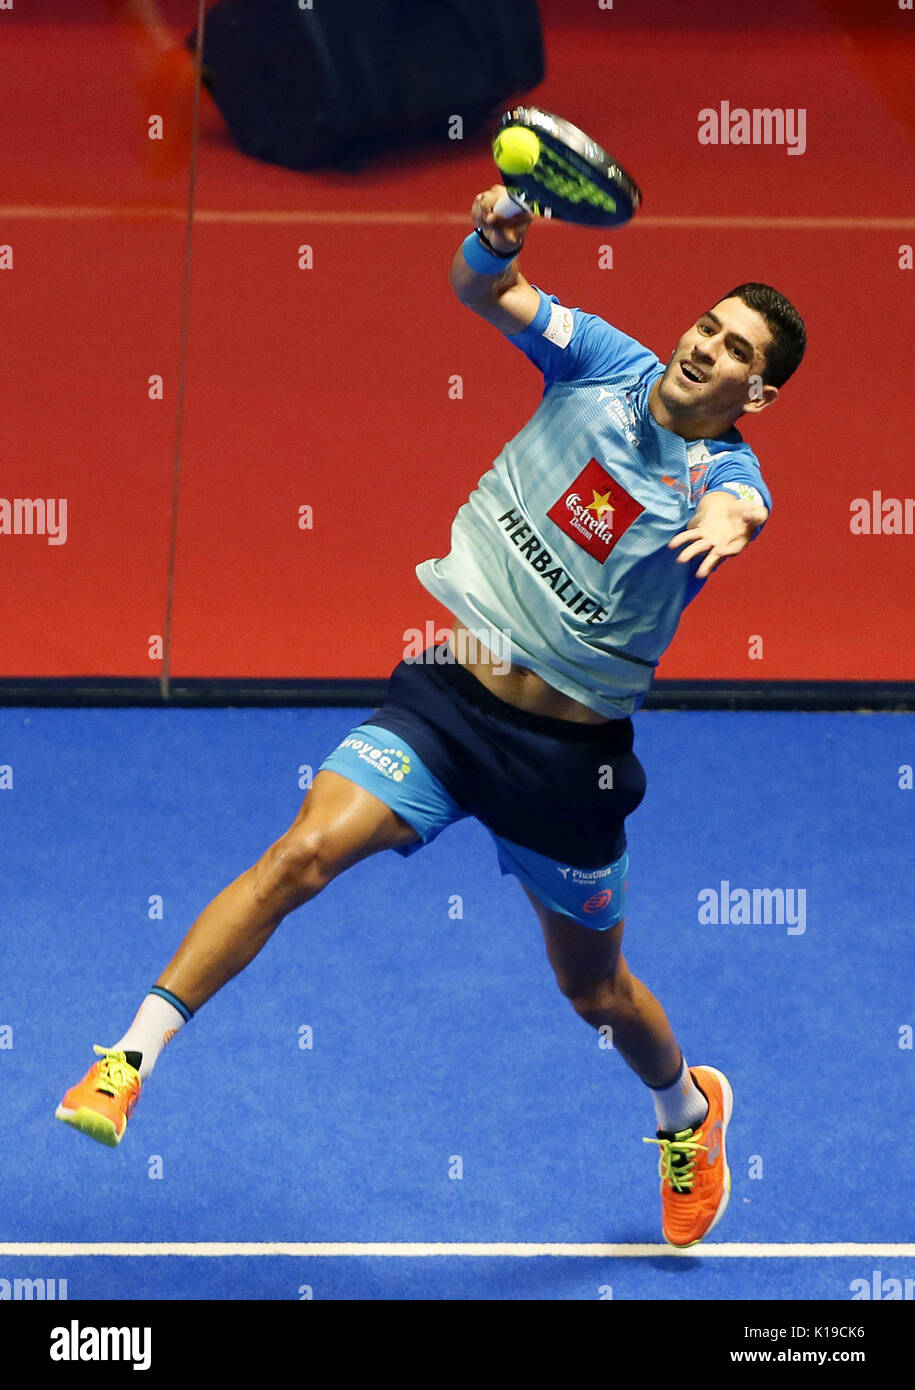 Padel player Maximiliano Sanchez in action during the Alicante Open 2017 men's semifinal, the sixth event of the professional circuit World Padel Tour, in Alicante, Spain, 26 August 2017. EFE/Manuel Lorenzo - Stock Image